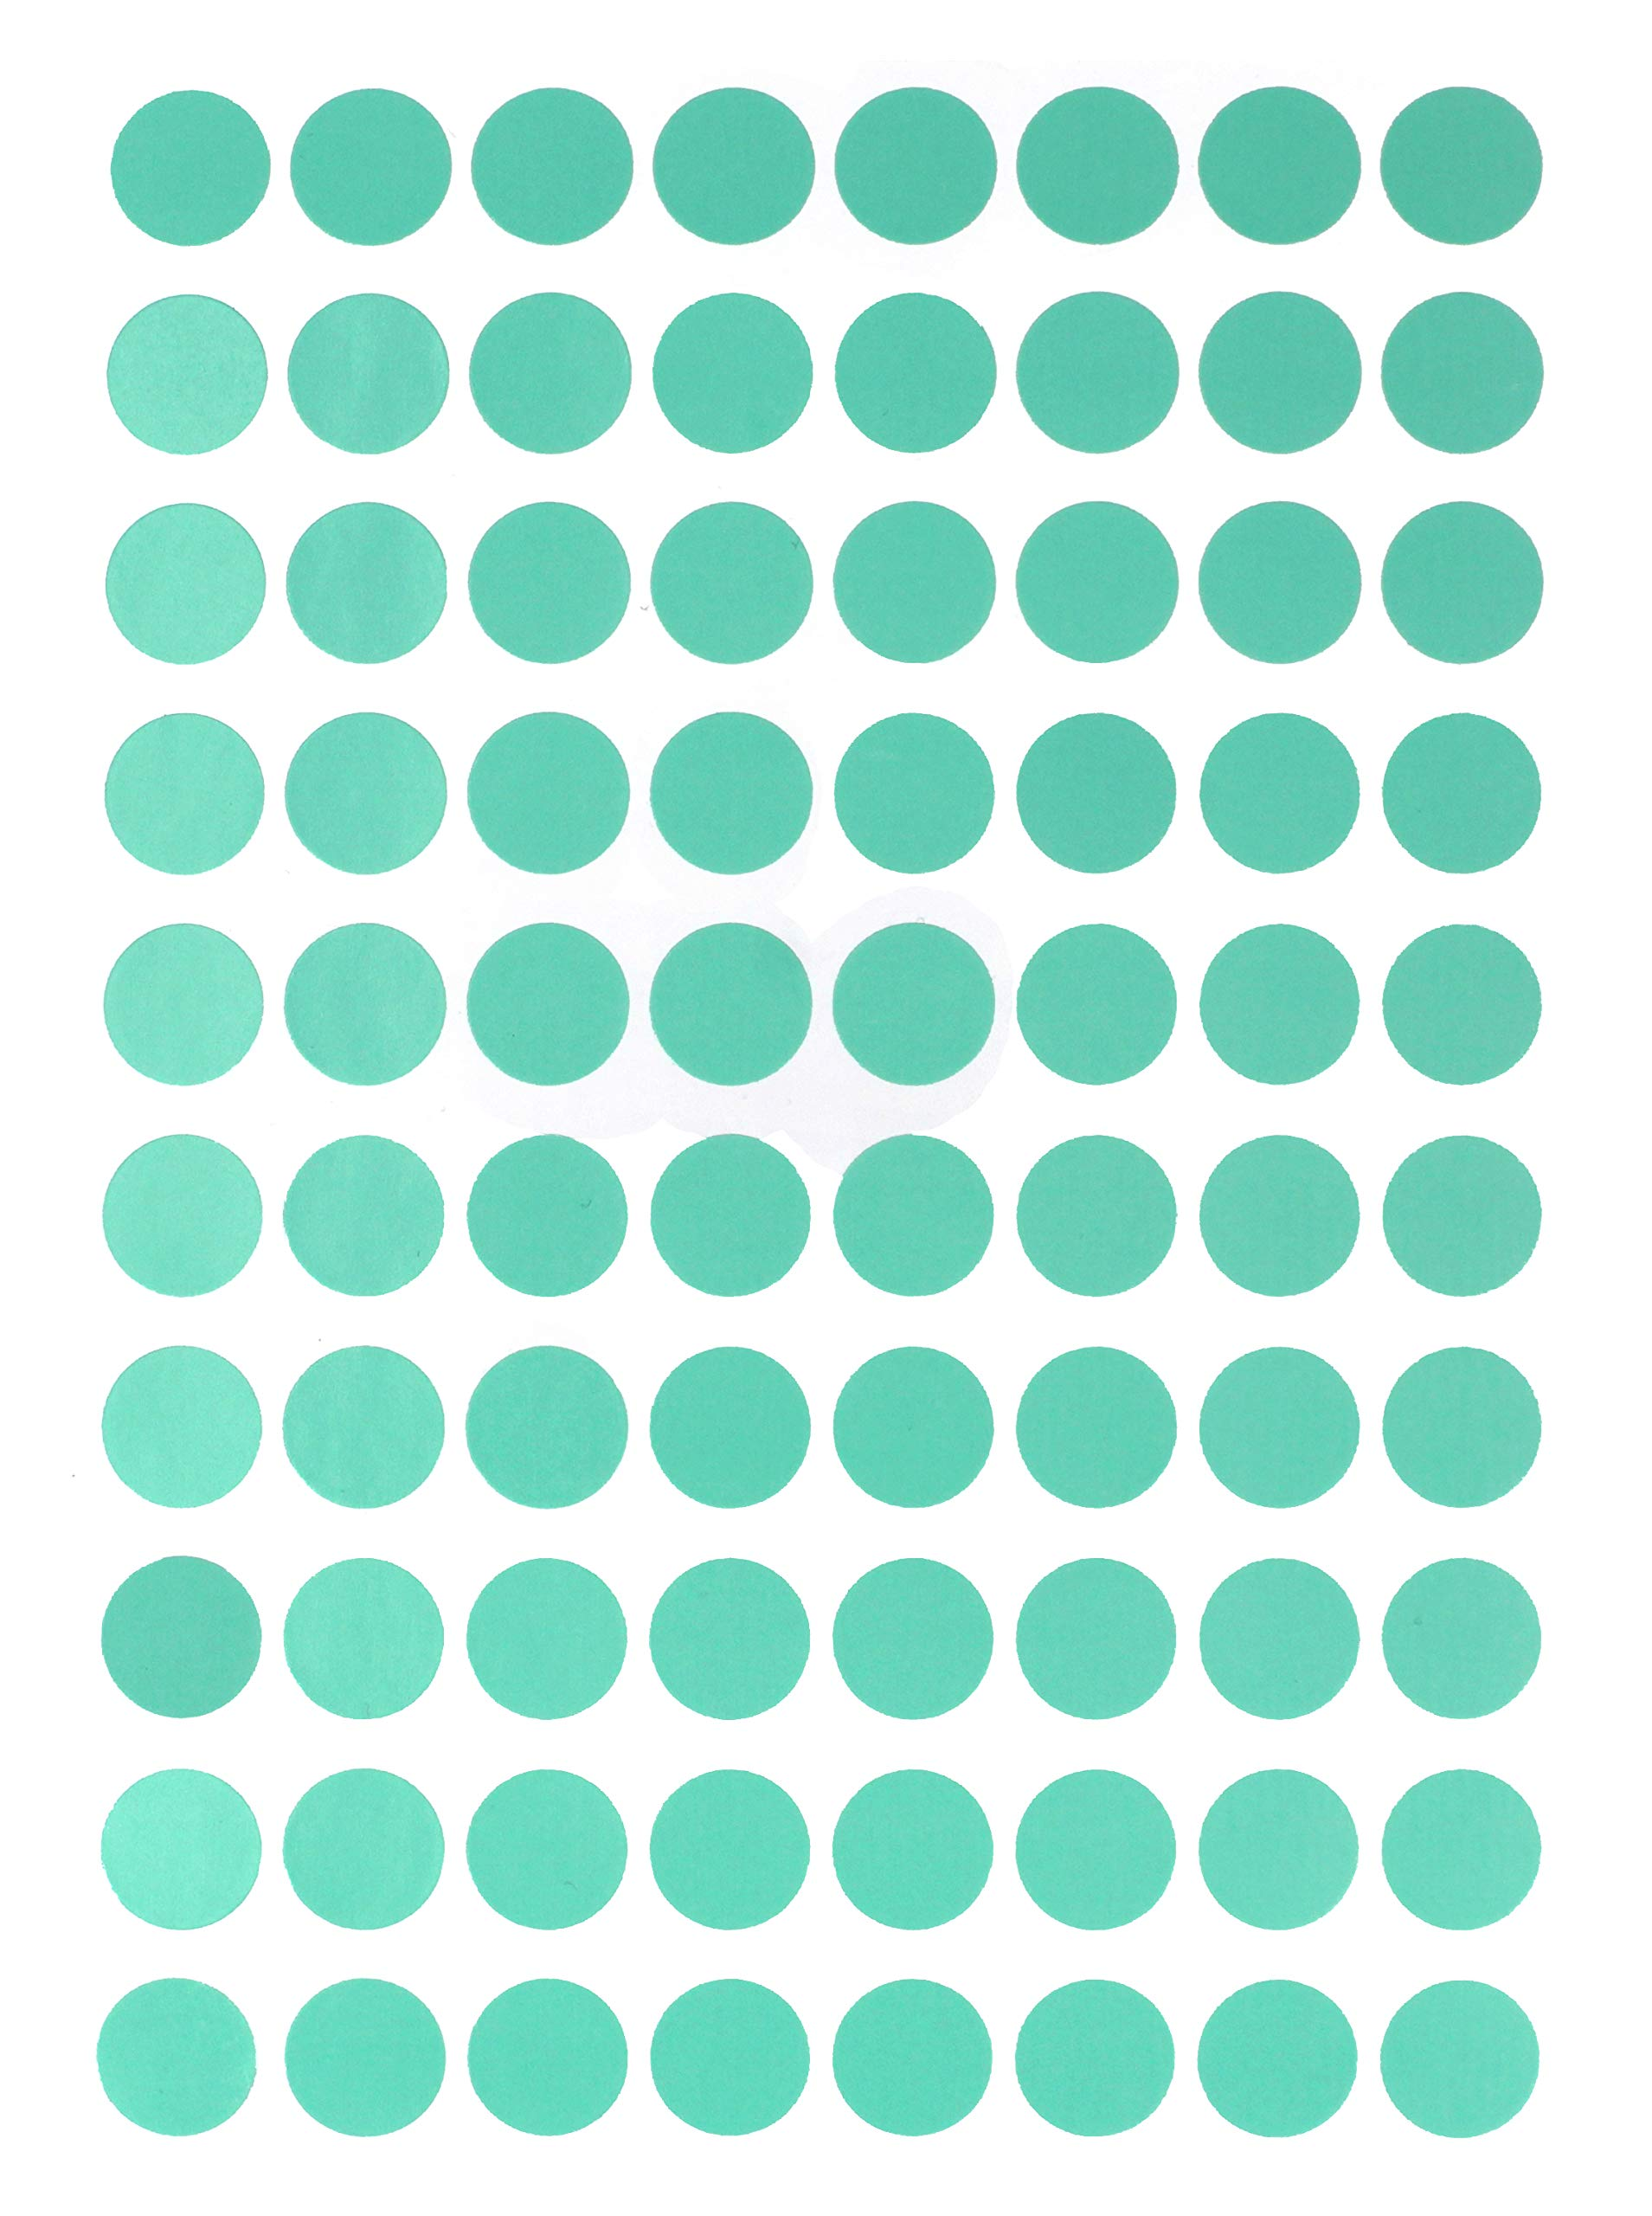 Royal Green Soft Colored Stickers in Green - 1/2 inch (13mm) - Pastel Decorative Multipurpose adhesives - Spring Colors for Color Coding - 1200 Pack